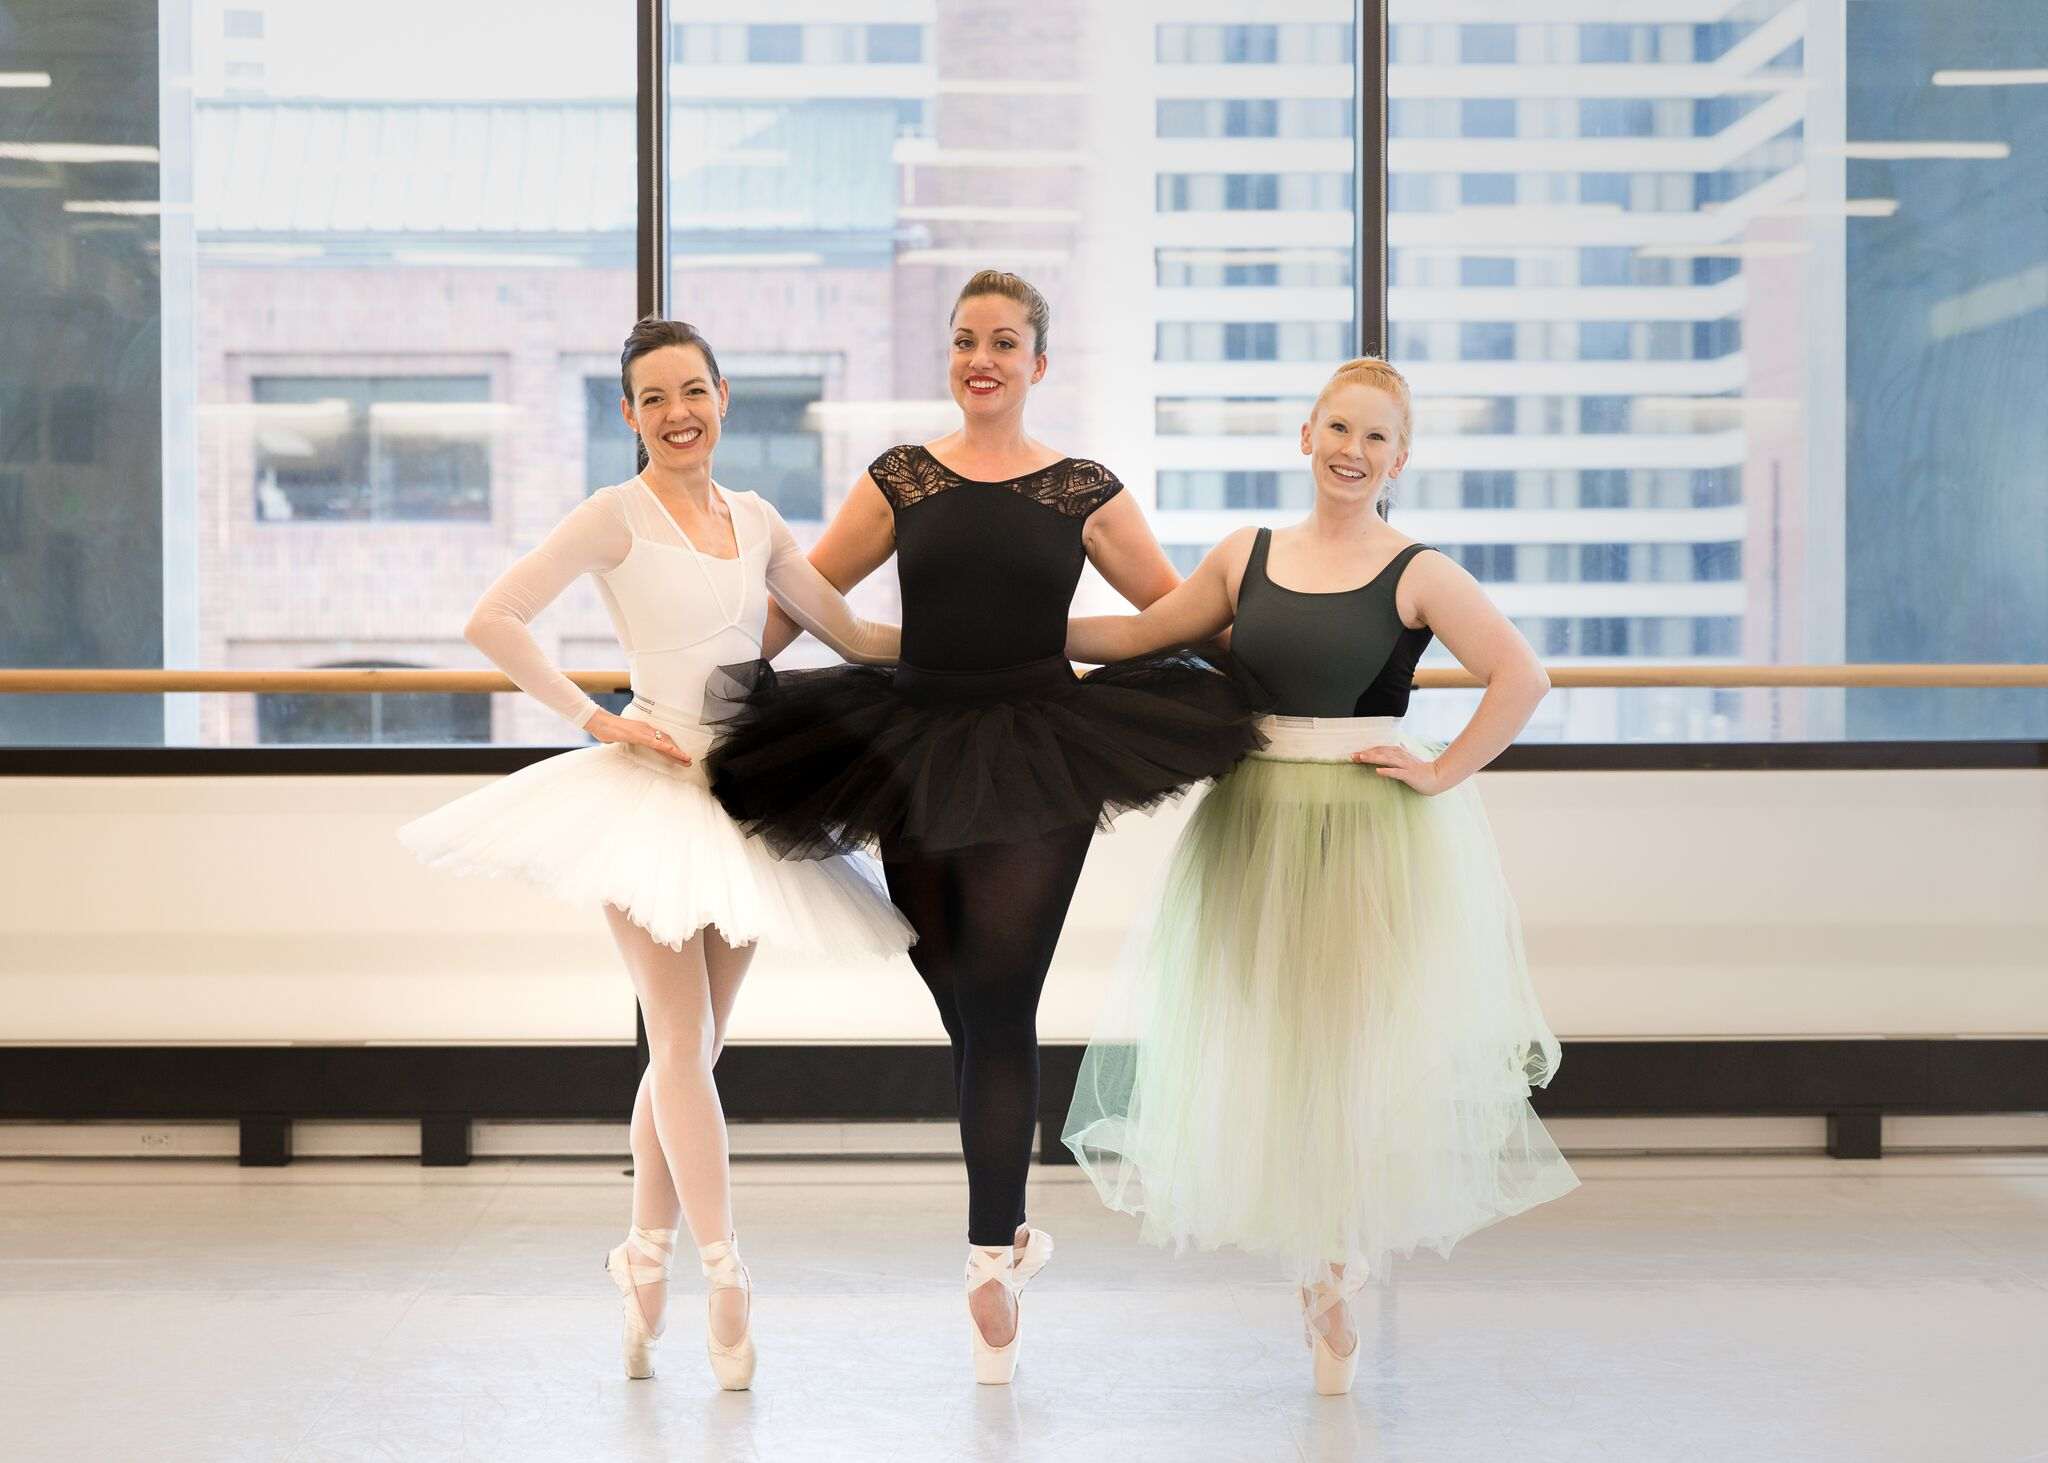 Adult Ballet Summer Intensive Principal Faculty - Artistic Directors, Allison DeBona and Rex Tilton, are proud to announce our esteemed Adult Ballet Summer Intensive faculty.